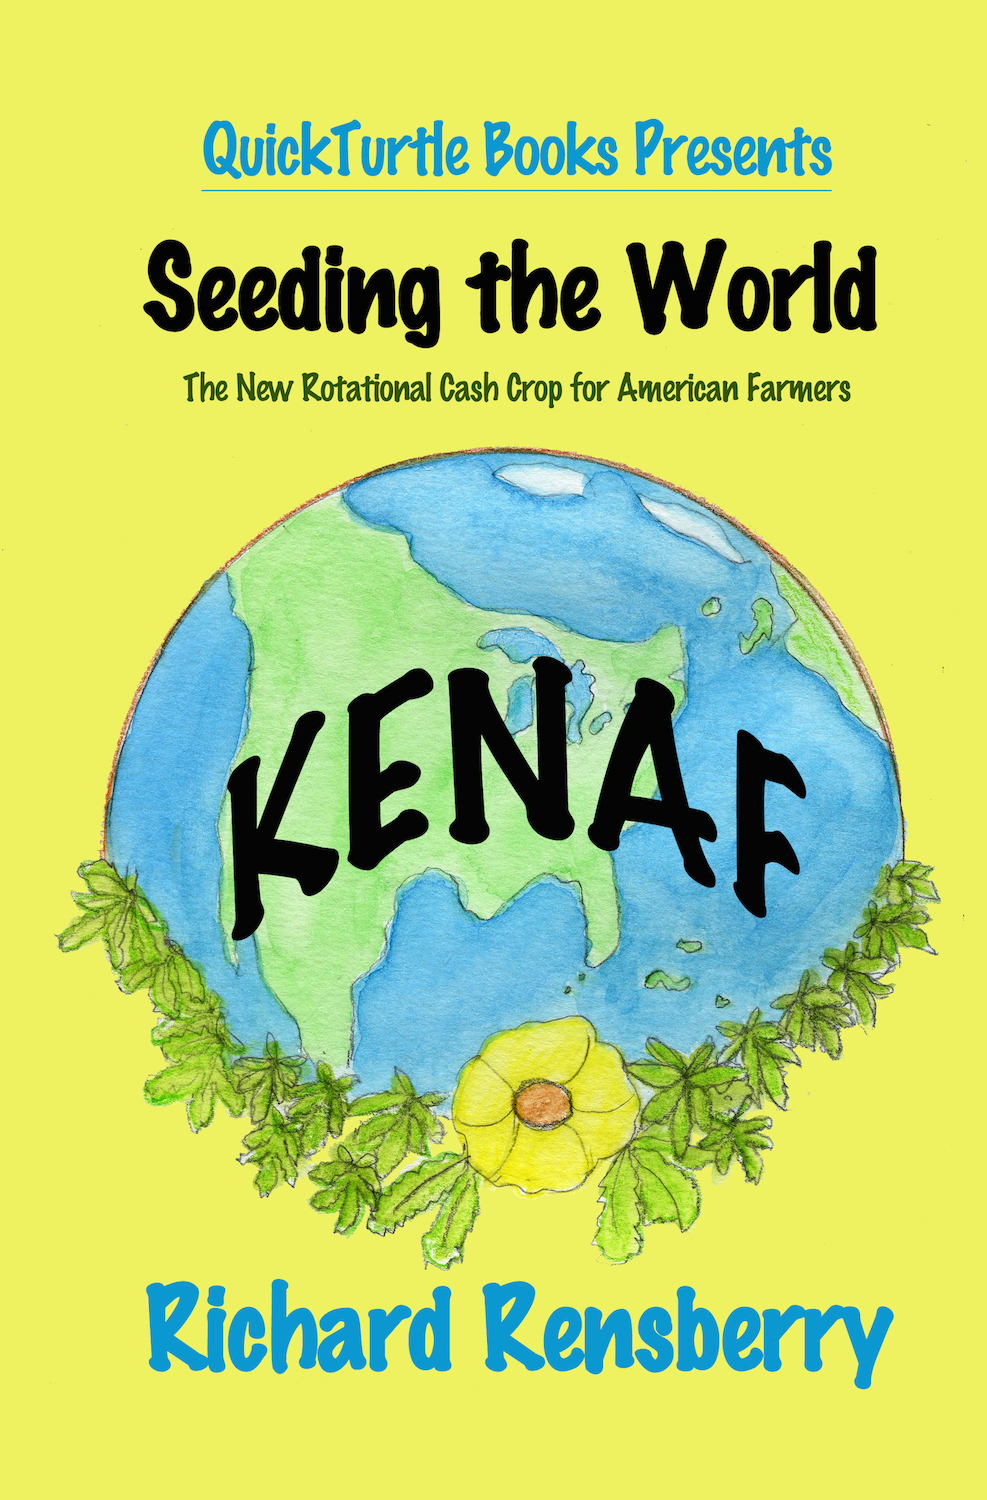 Books Make Booms brand building custom book, Kenaf, Seeding the World, written, illustrated and published by Richard and Mary Rensberry of Fairview, Michigan.